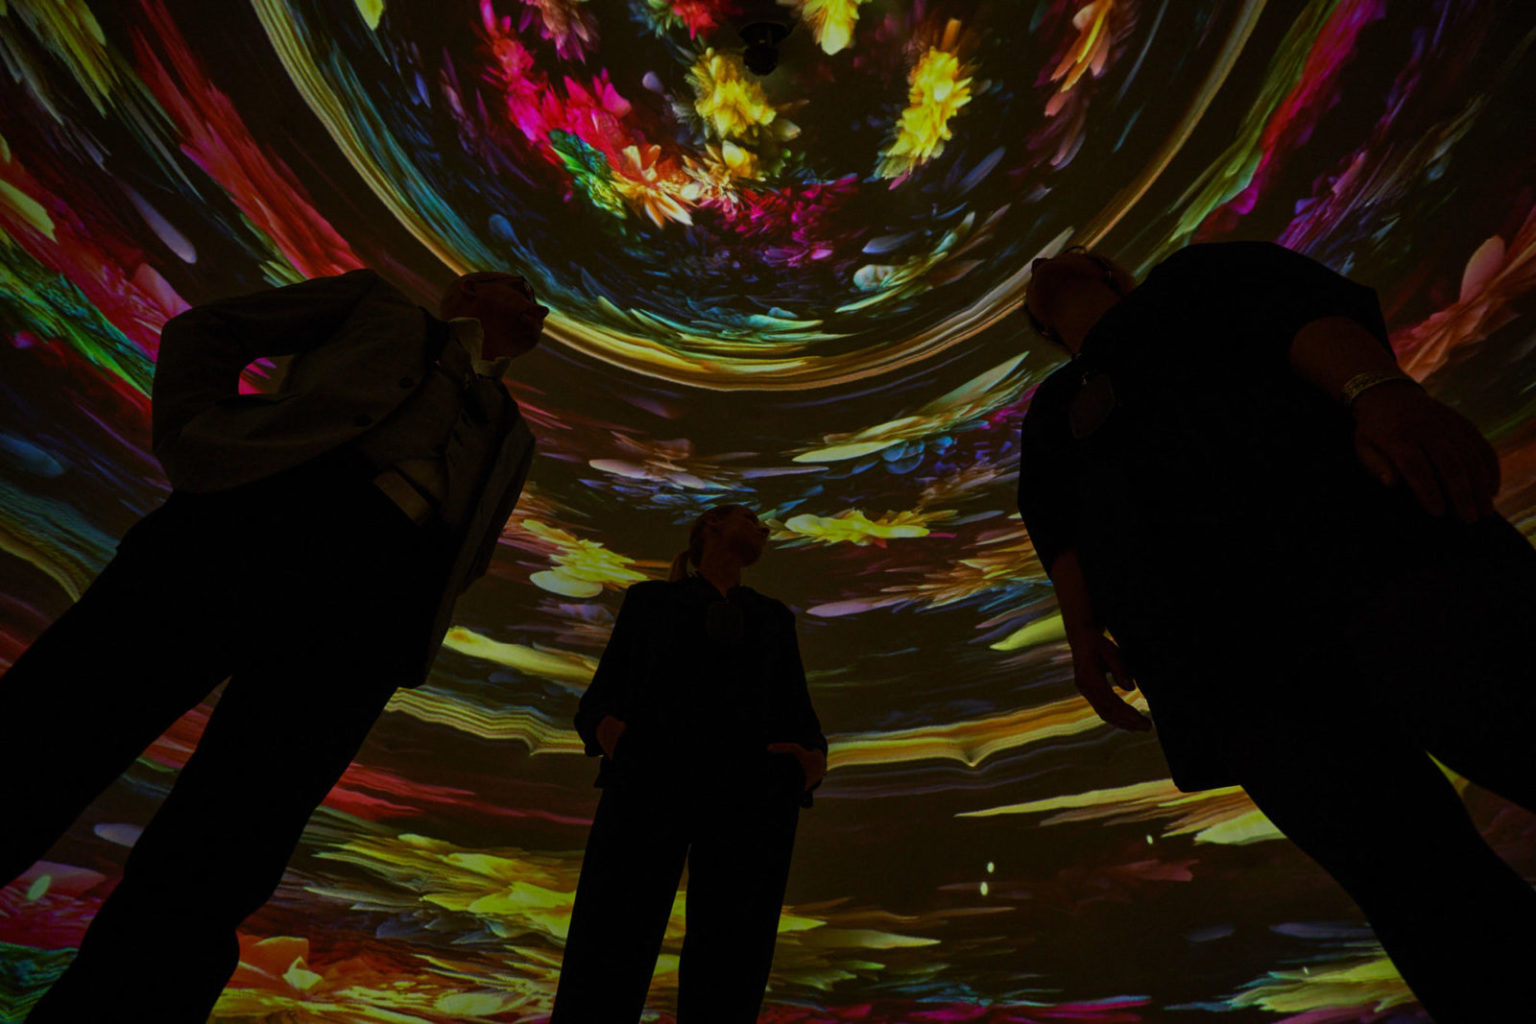 In the image, three people standing in a semicircular dome, surrounded by digital and floral patterns in vibrant colors.